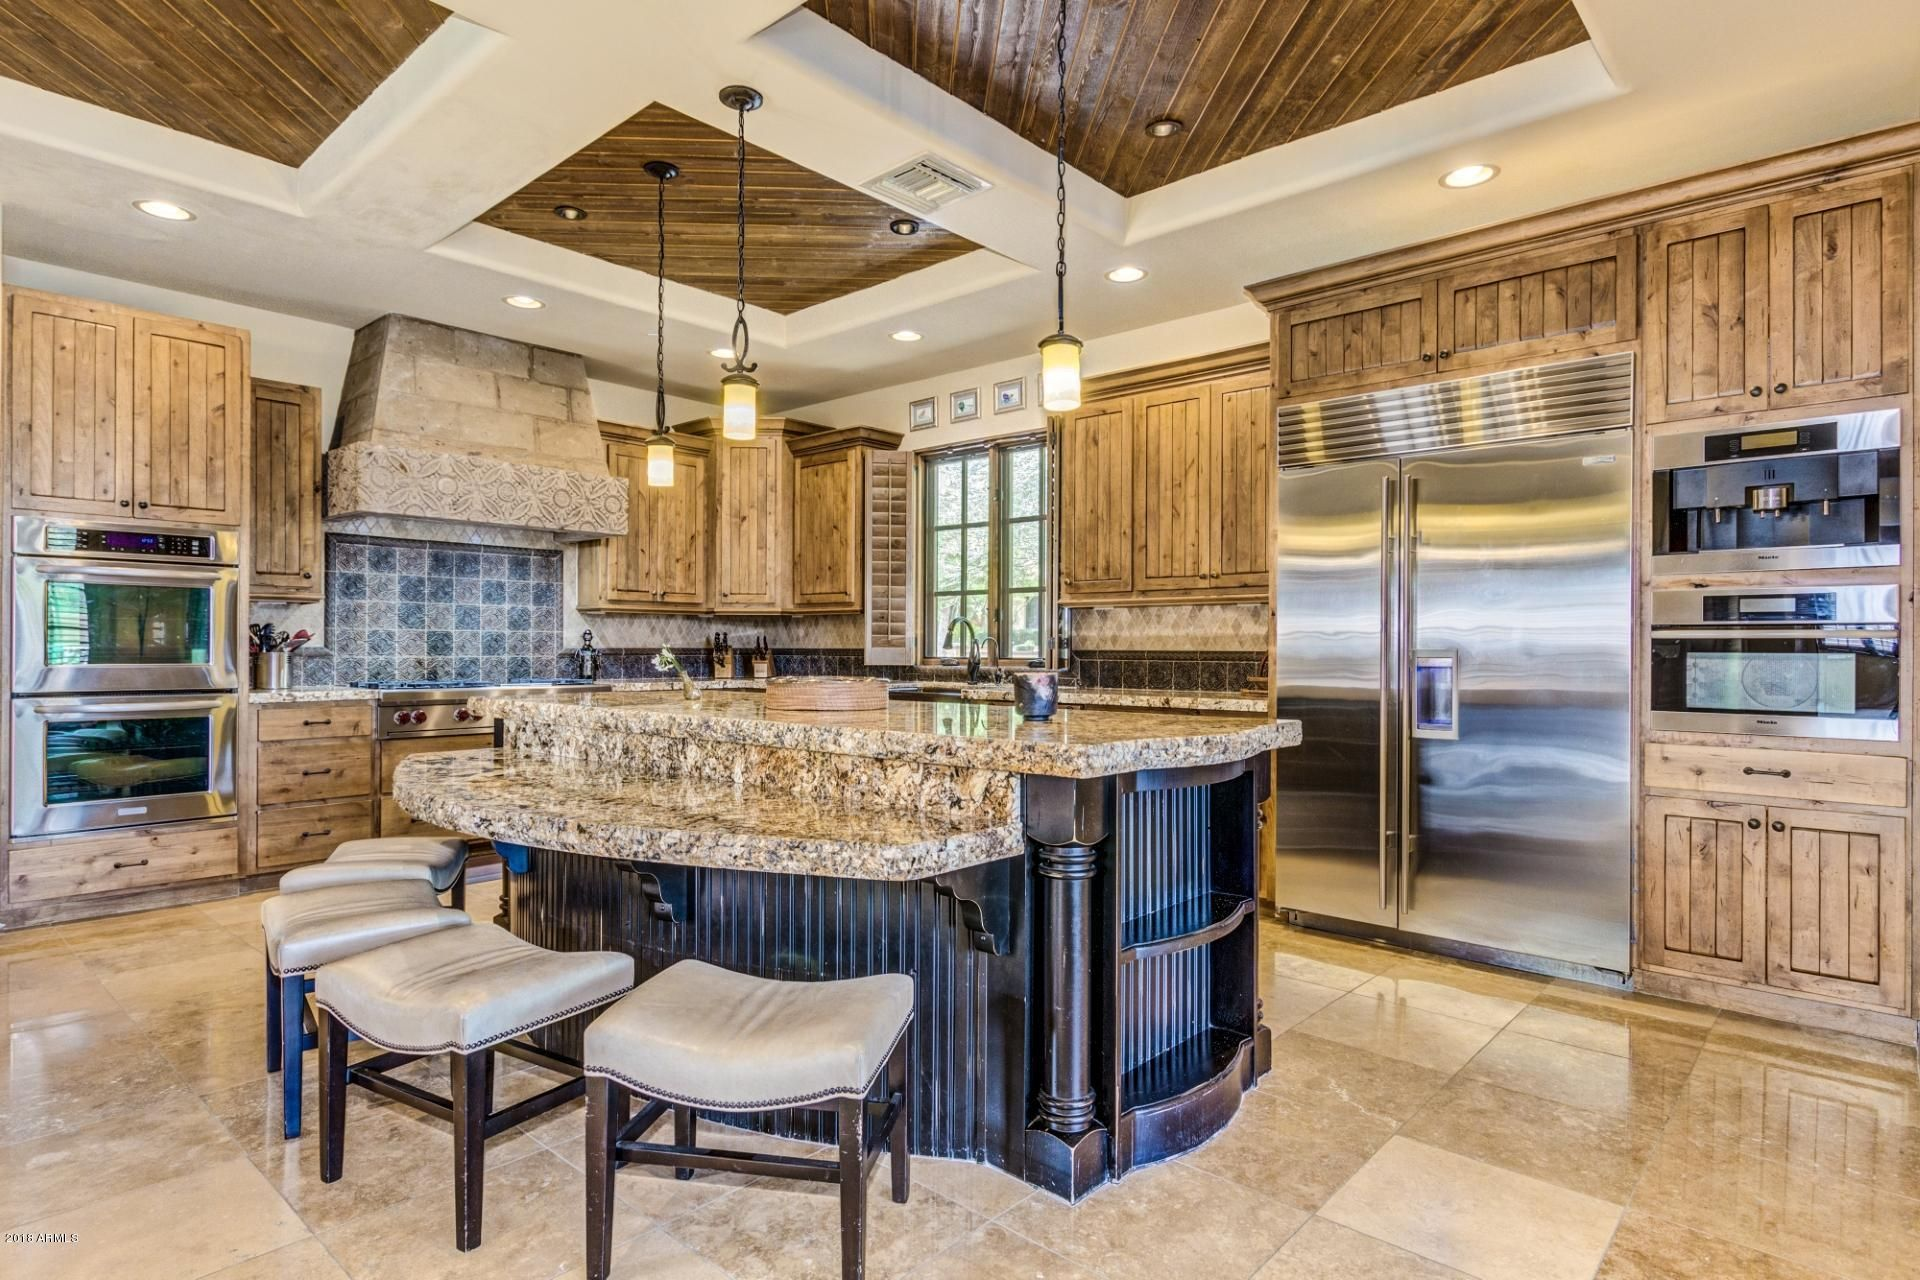 Search North Scottsdale Cave Creek Carefree Az Real Estate Platinum Realty Network Kitchen Interior Design Modern Interior Design Kitchen Coffered Ceiling